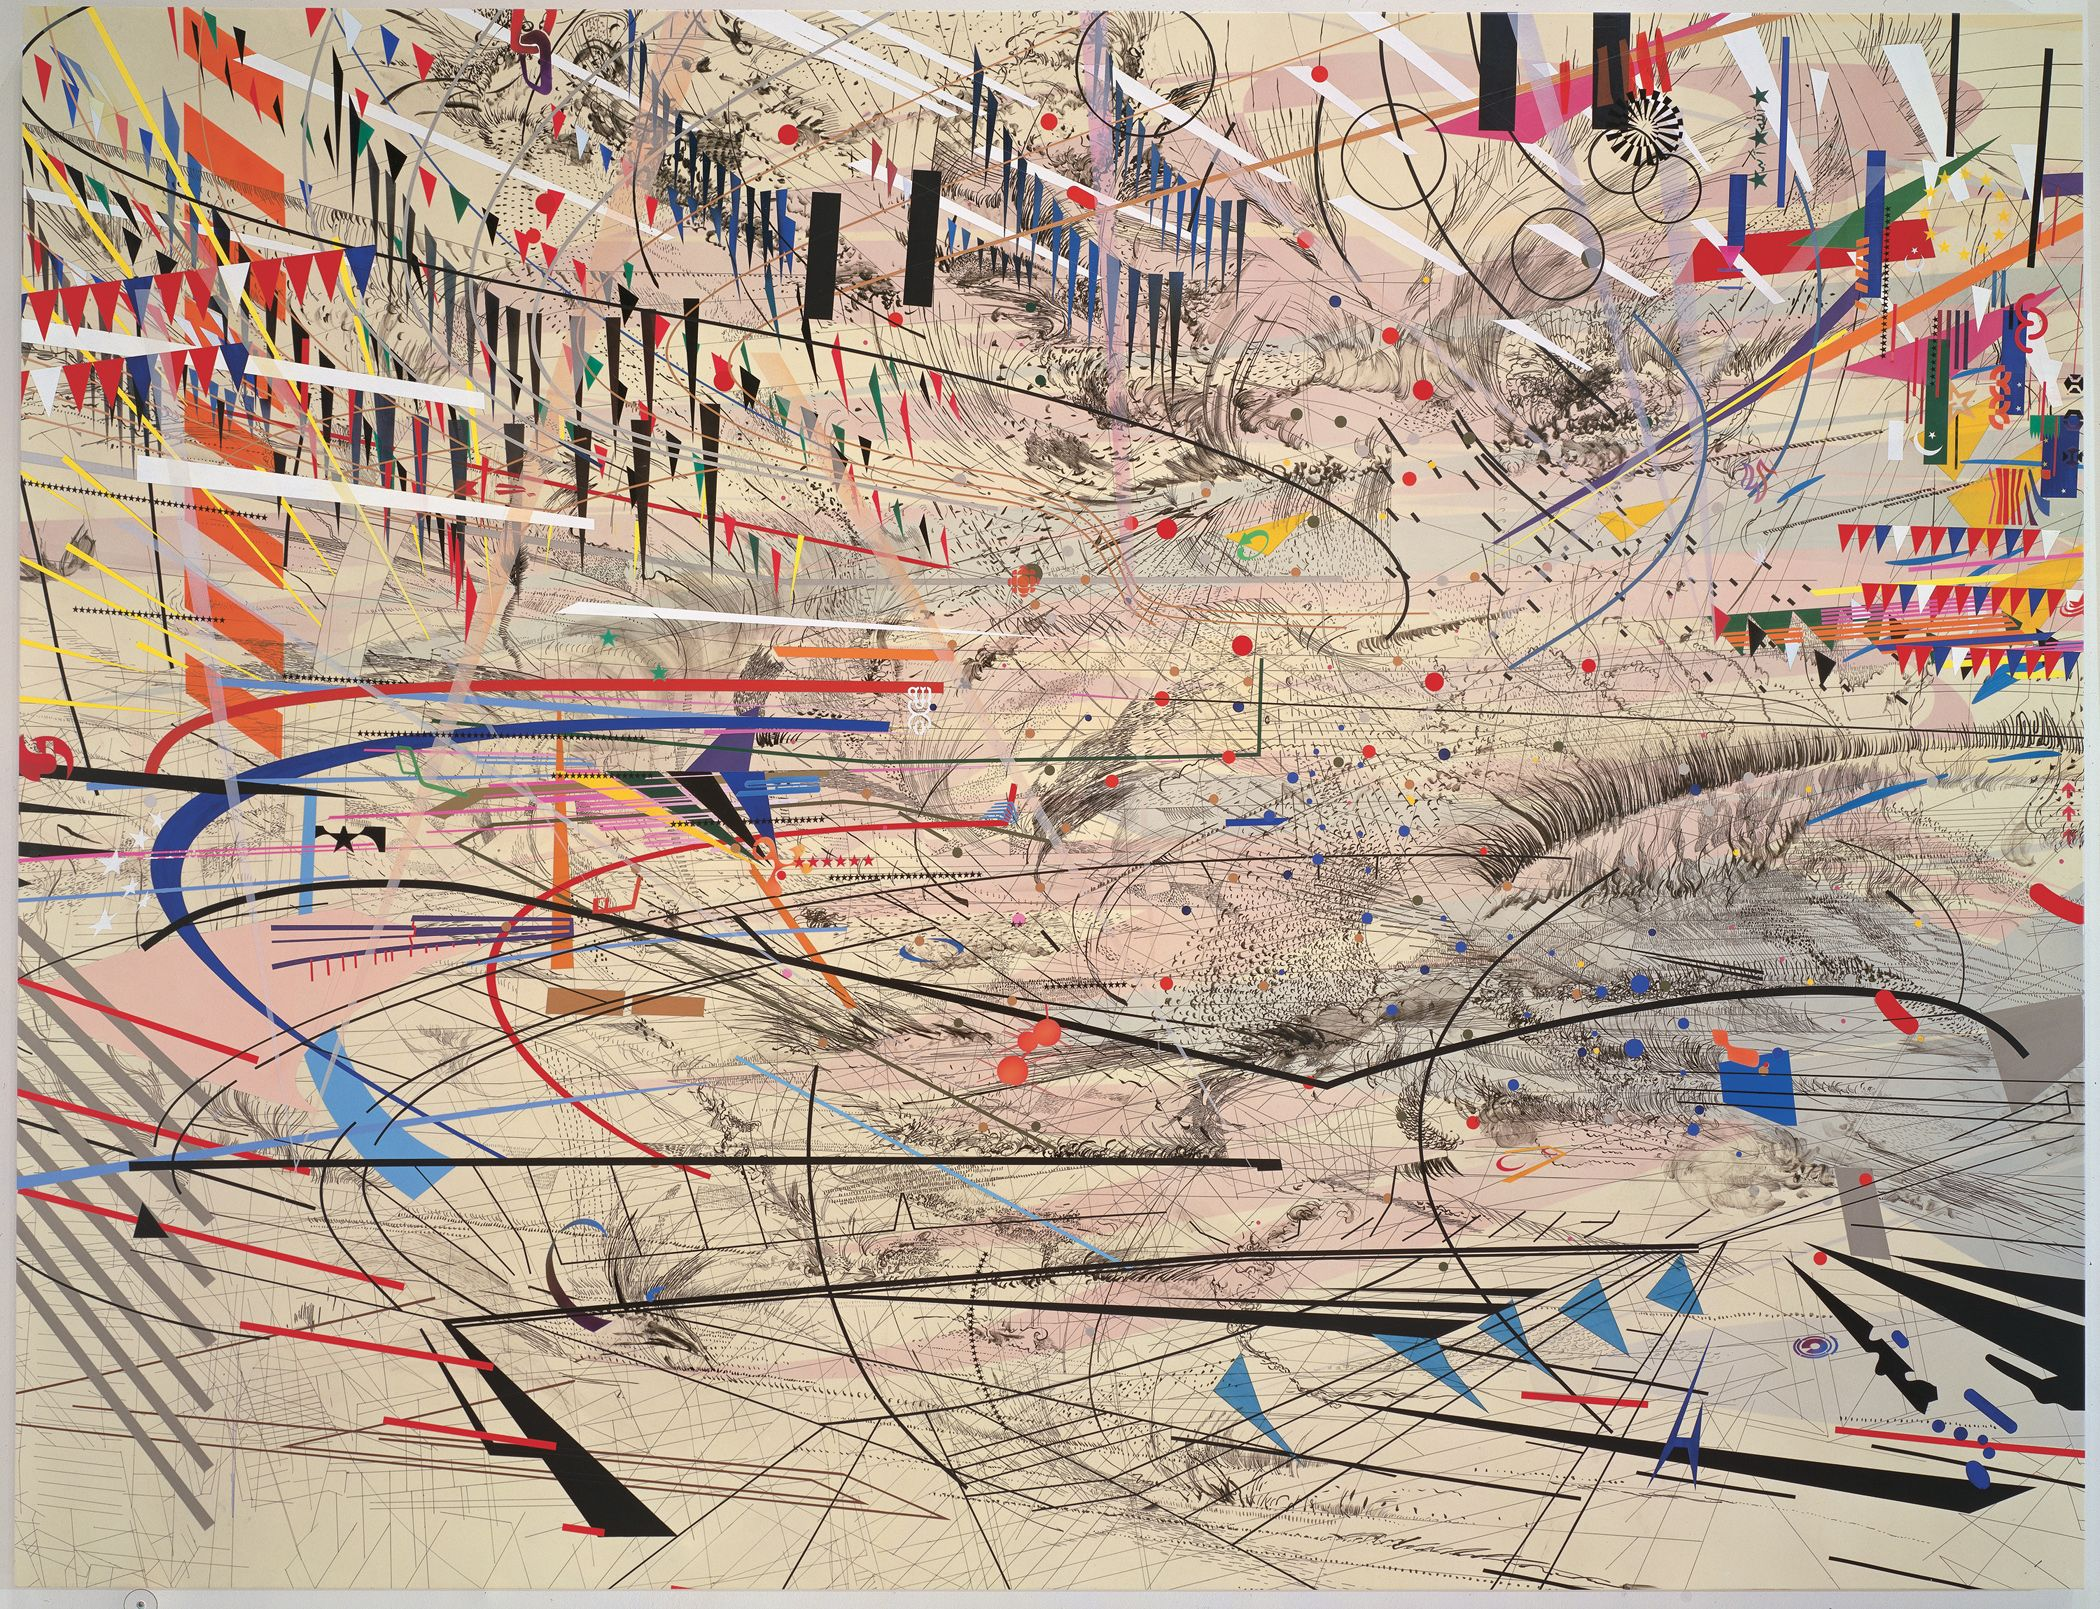 Approximately eight by eleven feet, Julie Mehretu's three separate pieces of her Stadia series seem to emanate, each from a slightly different center, with international flags and corporate logos t...